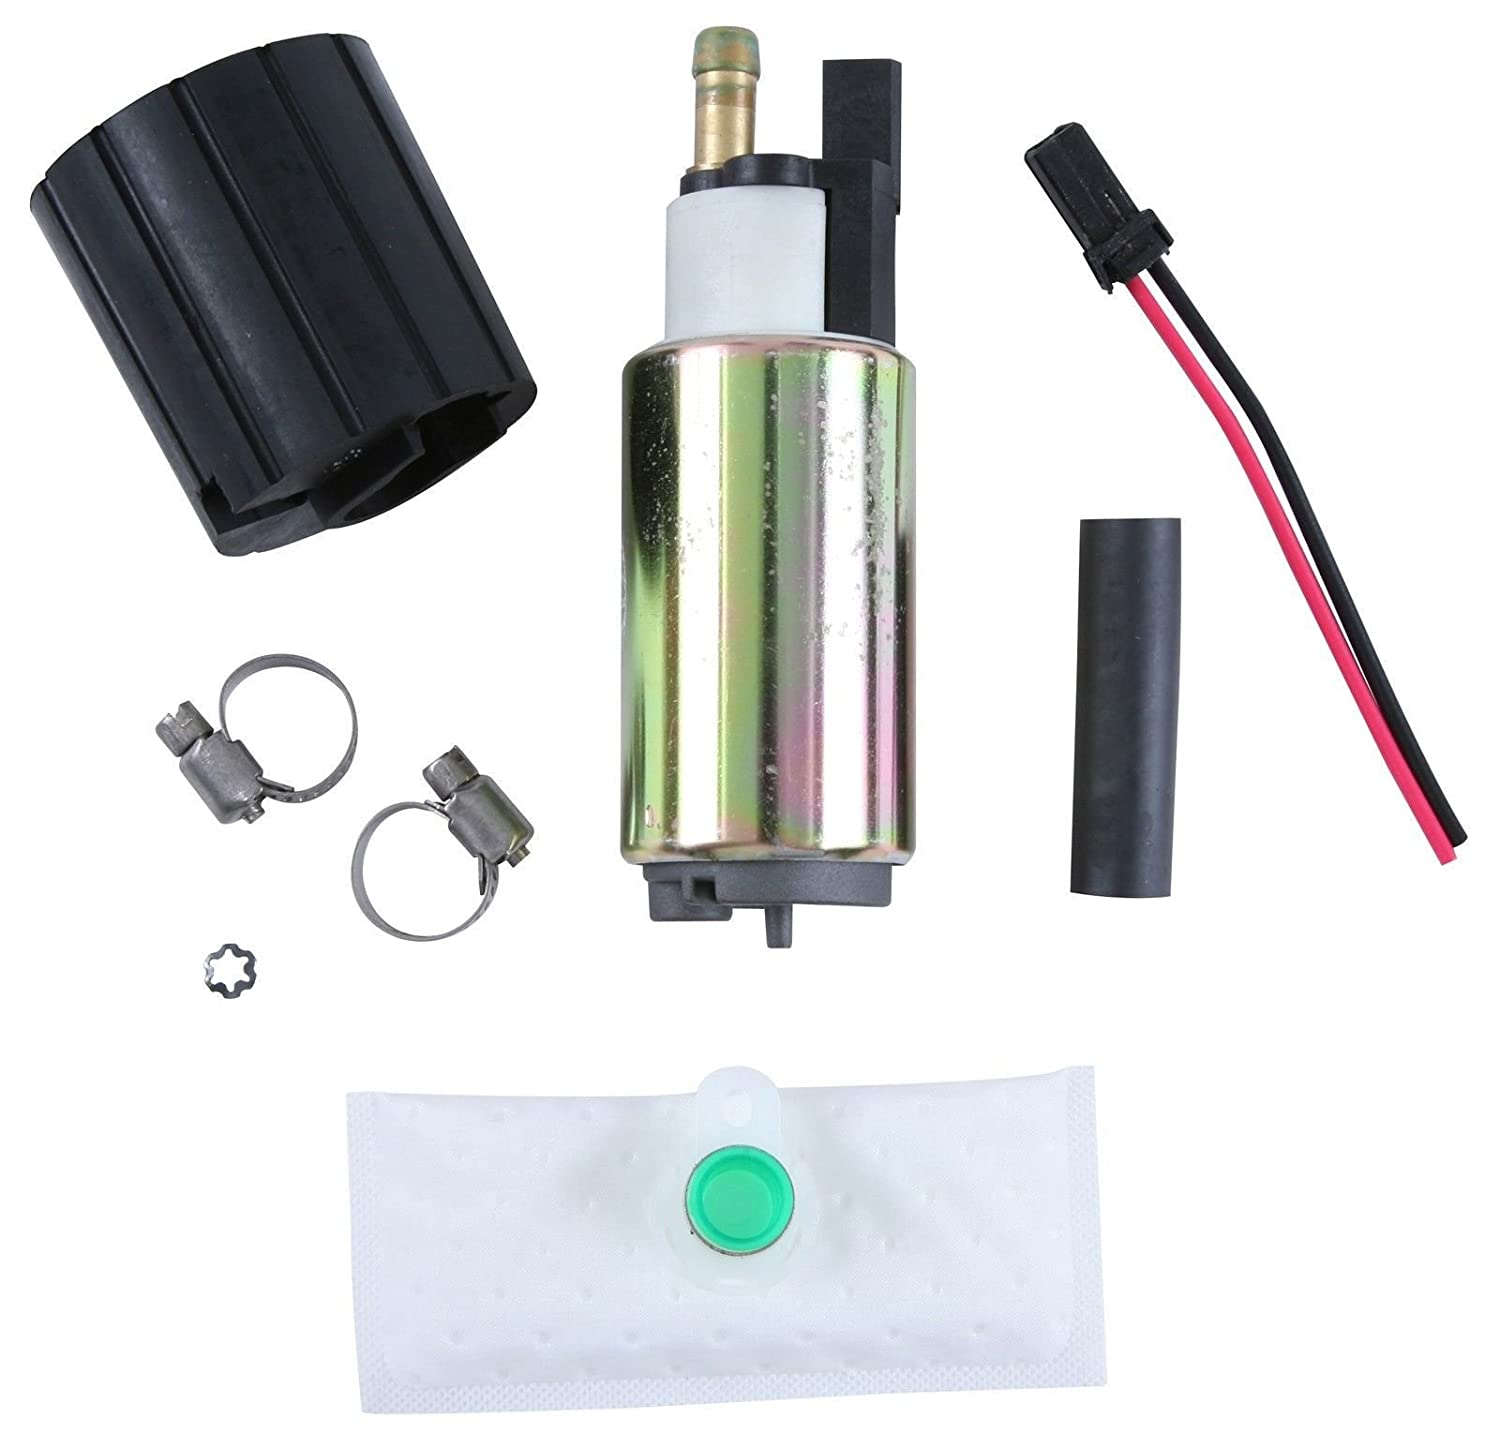 Tpp Usa Fuel Pump E2158 For Crown Victoria Marquis Town 2003 Ford Explorer Filter Location Car Automotive